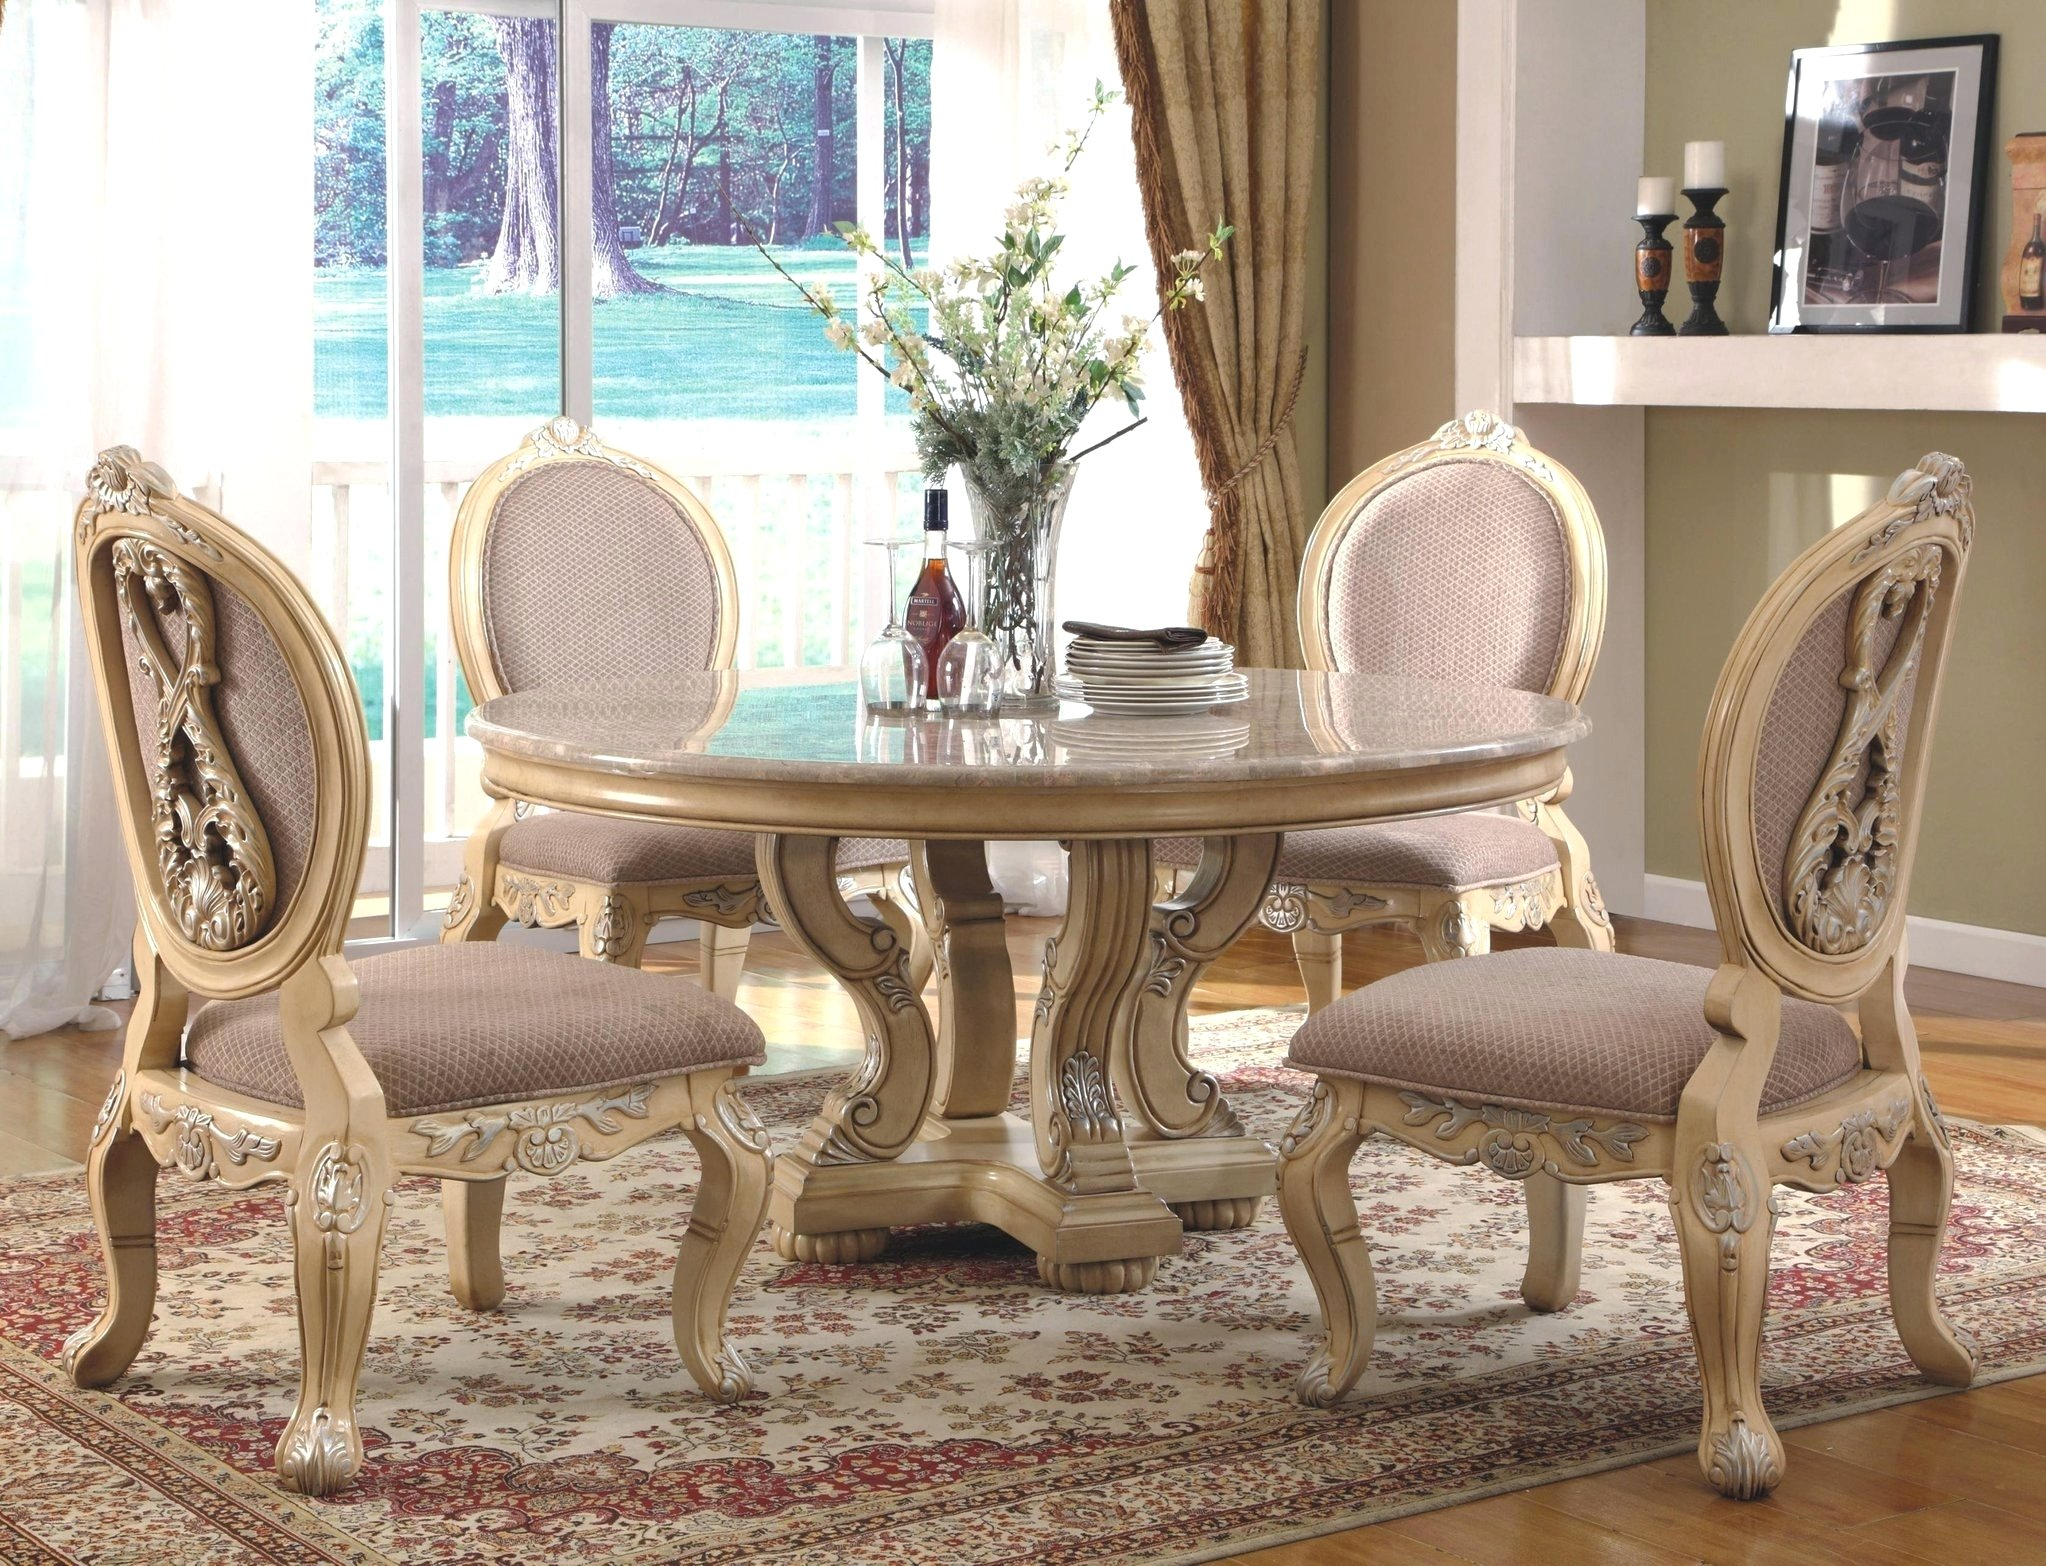 furniture antique white dining table with bench vintage set distressed room chairs furnishings traditional round pedestal piece and dark brown accent off small dinner home goods